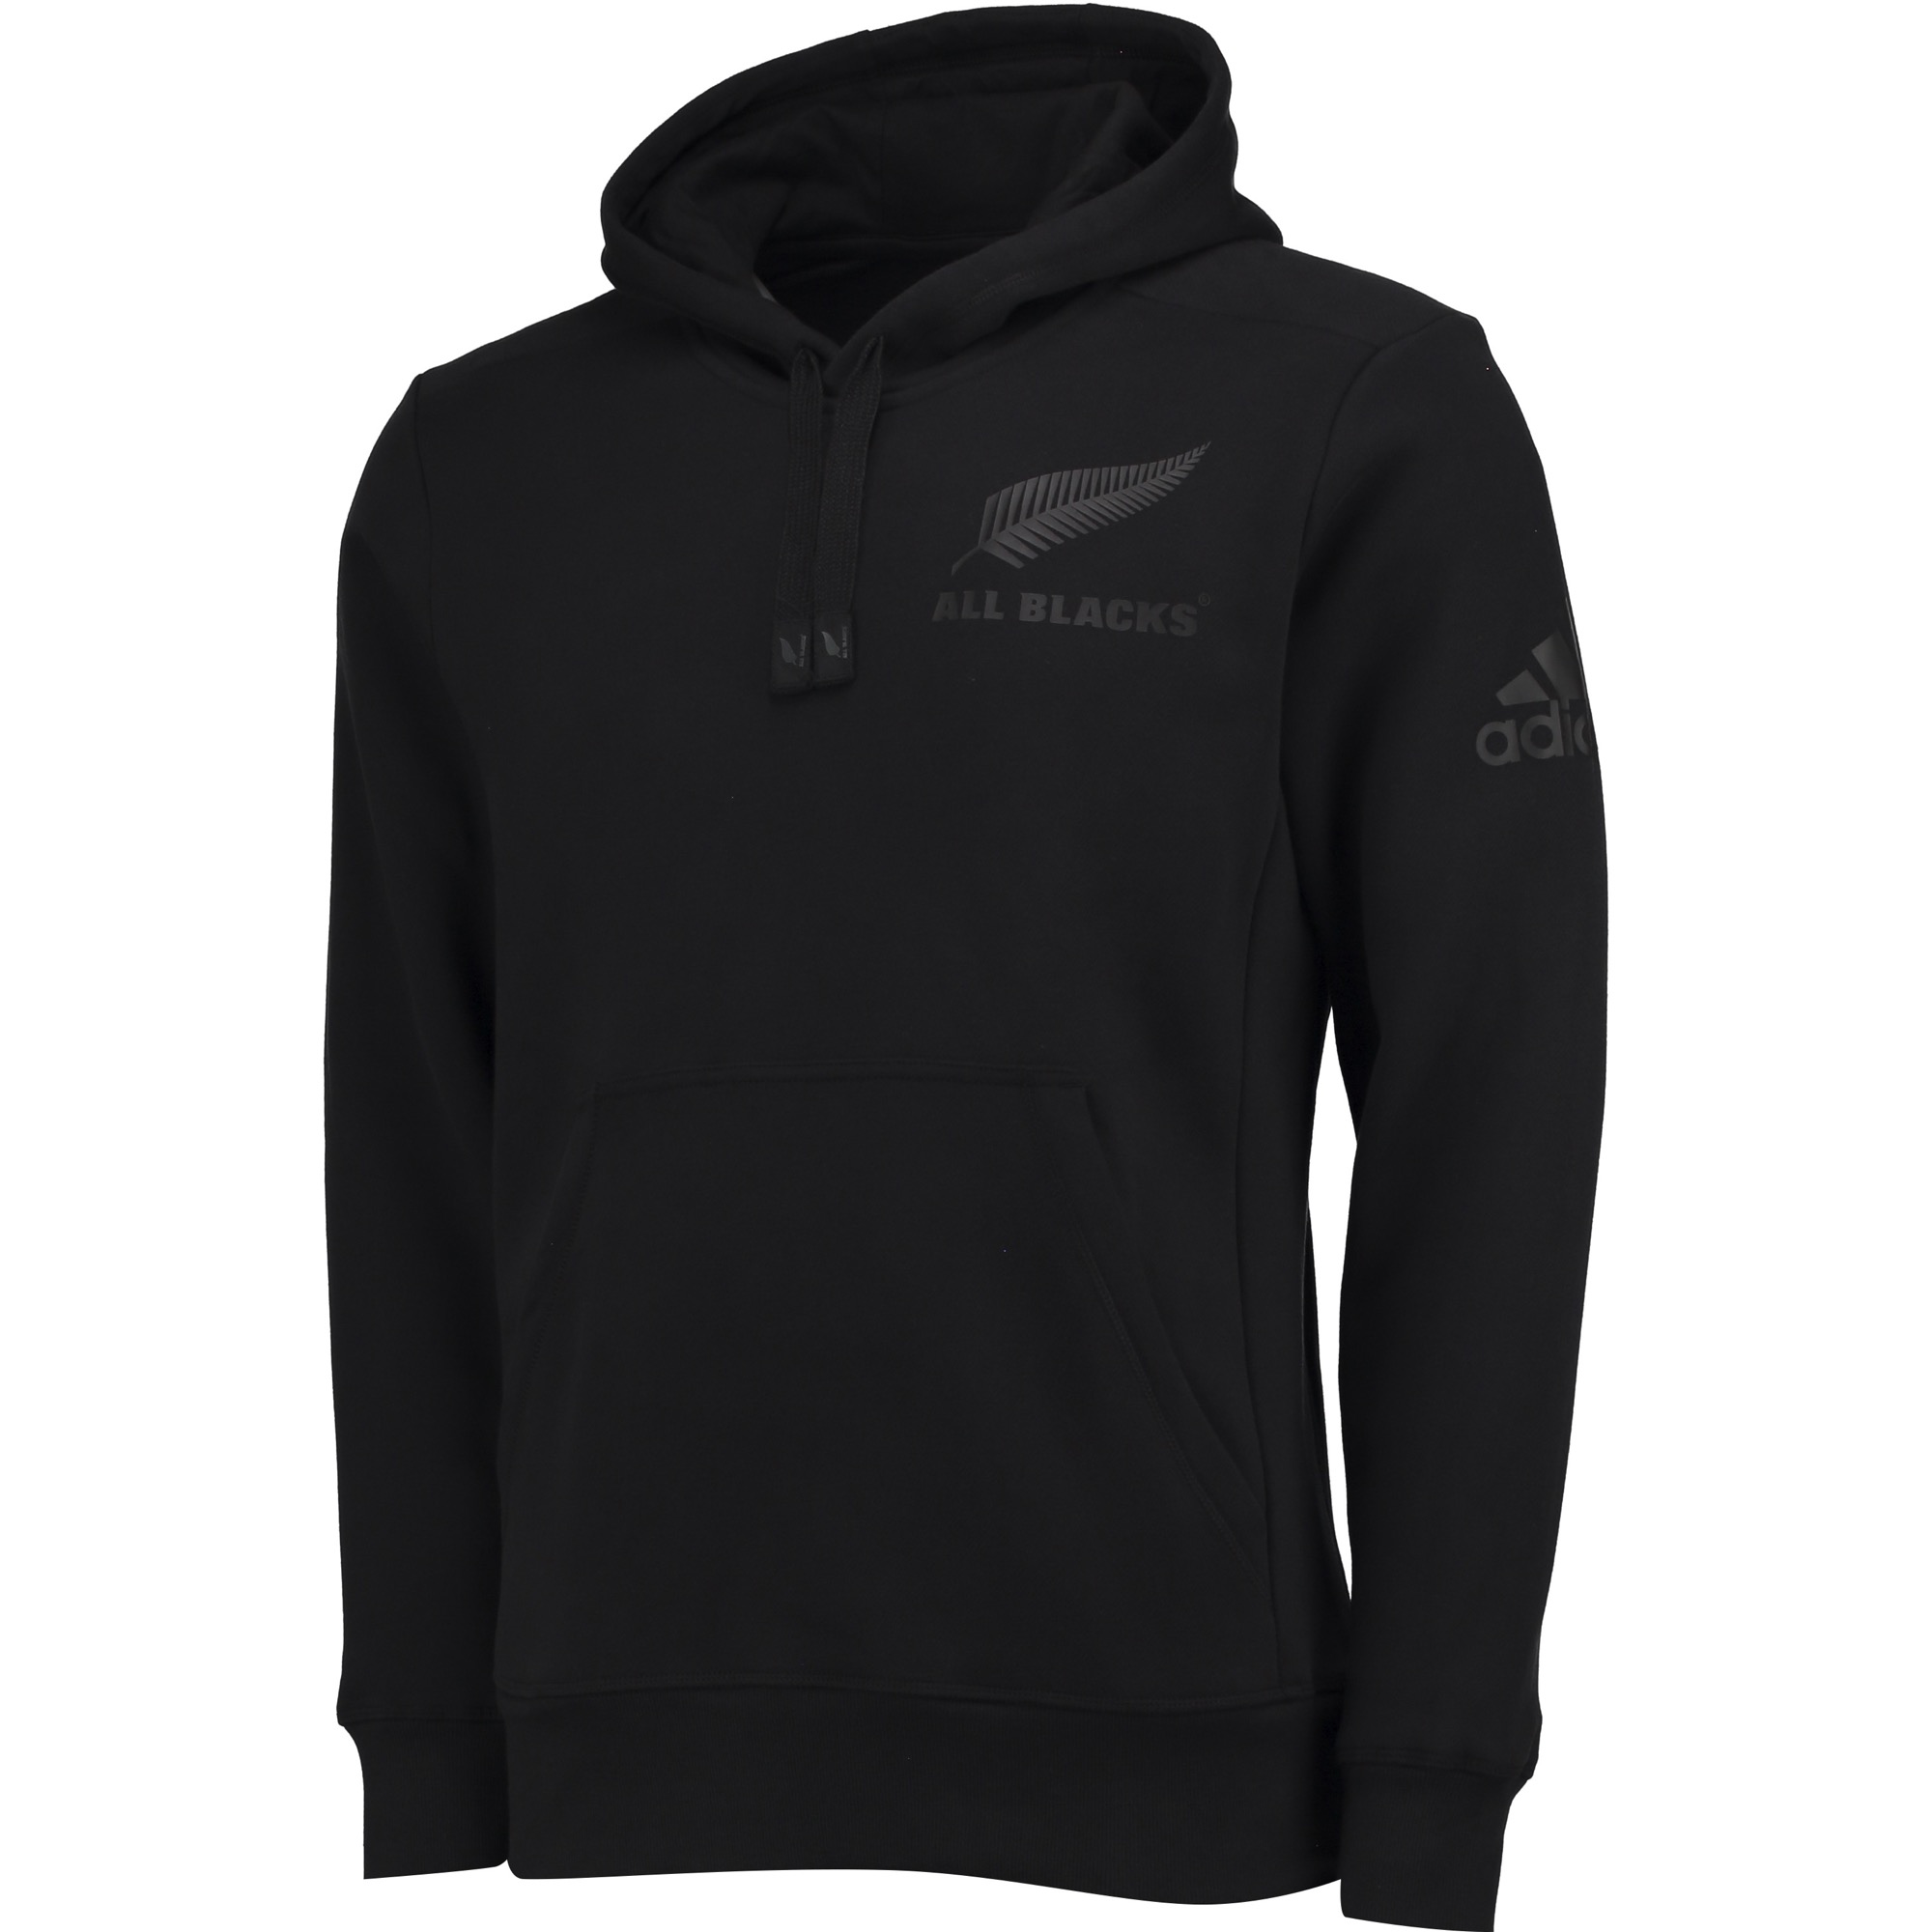 """Image of """"All Blacks Rugby Supporters Hoodie - Black"""""""